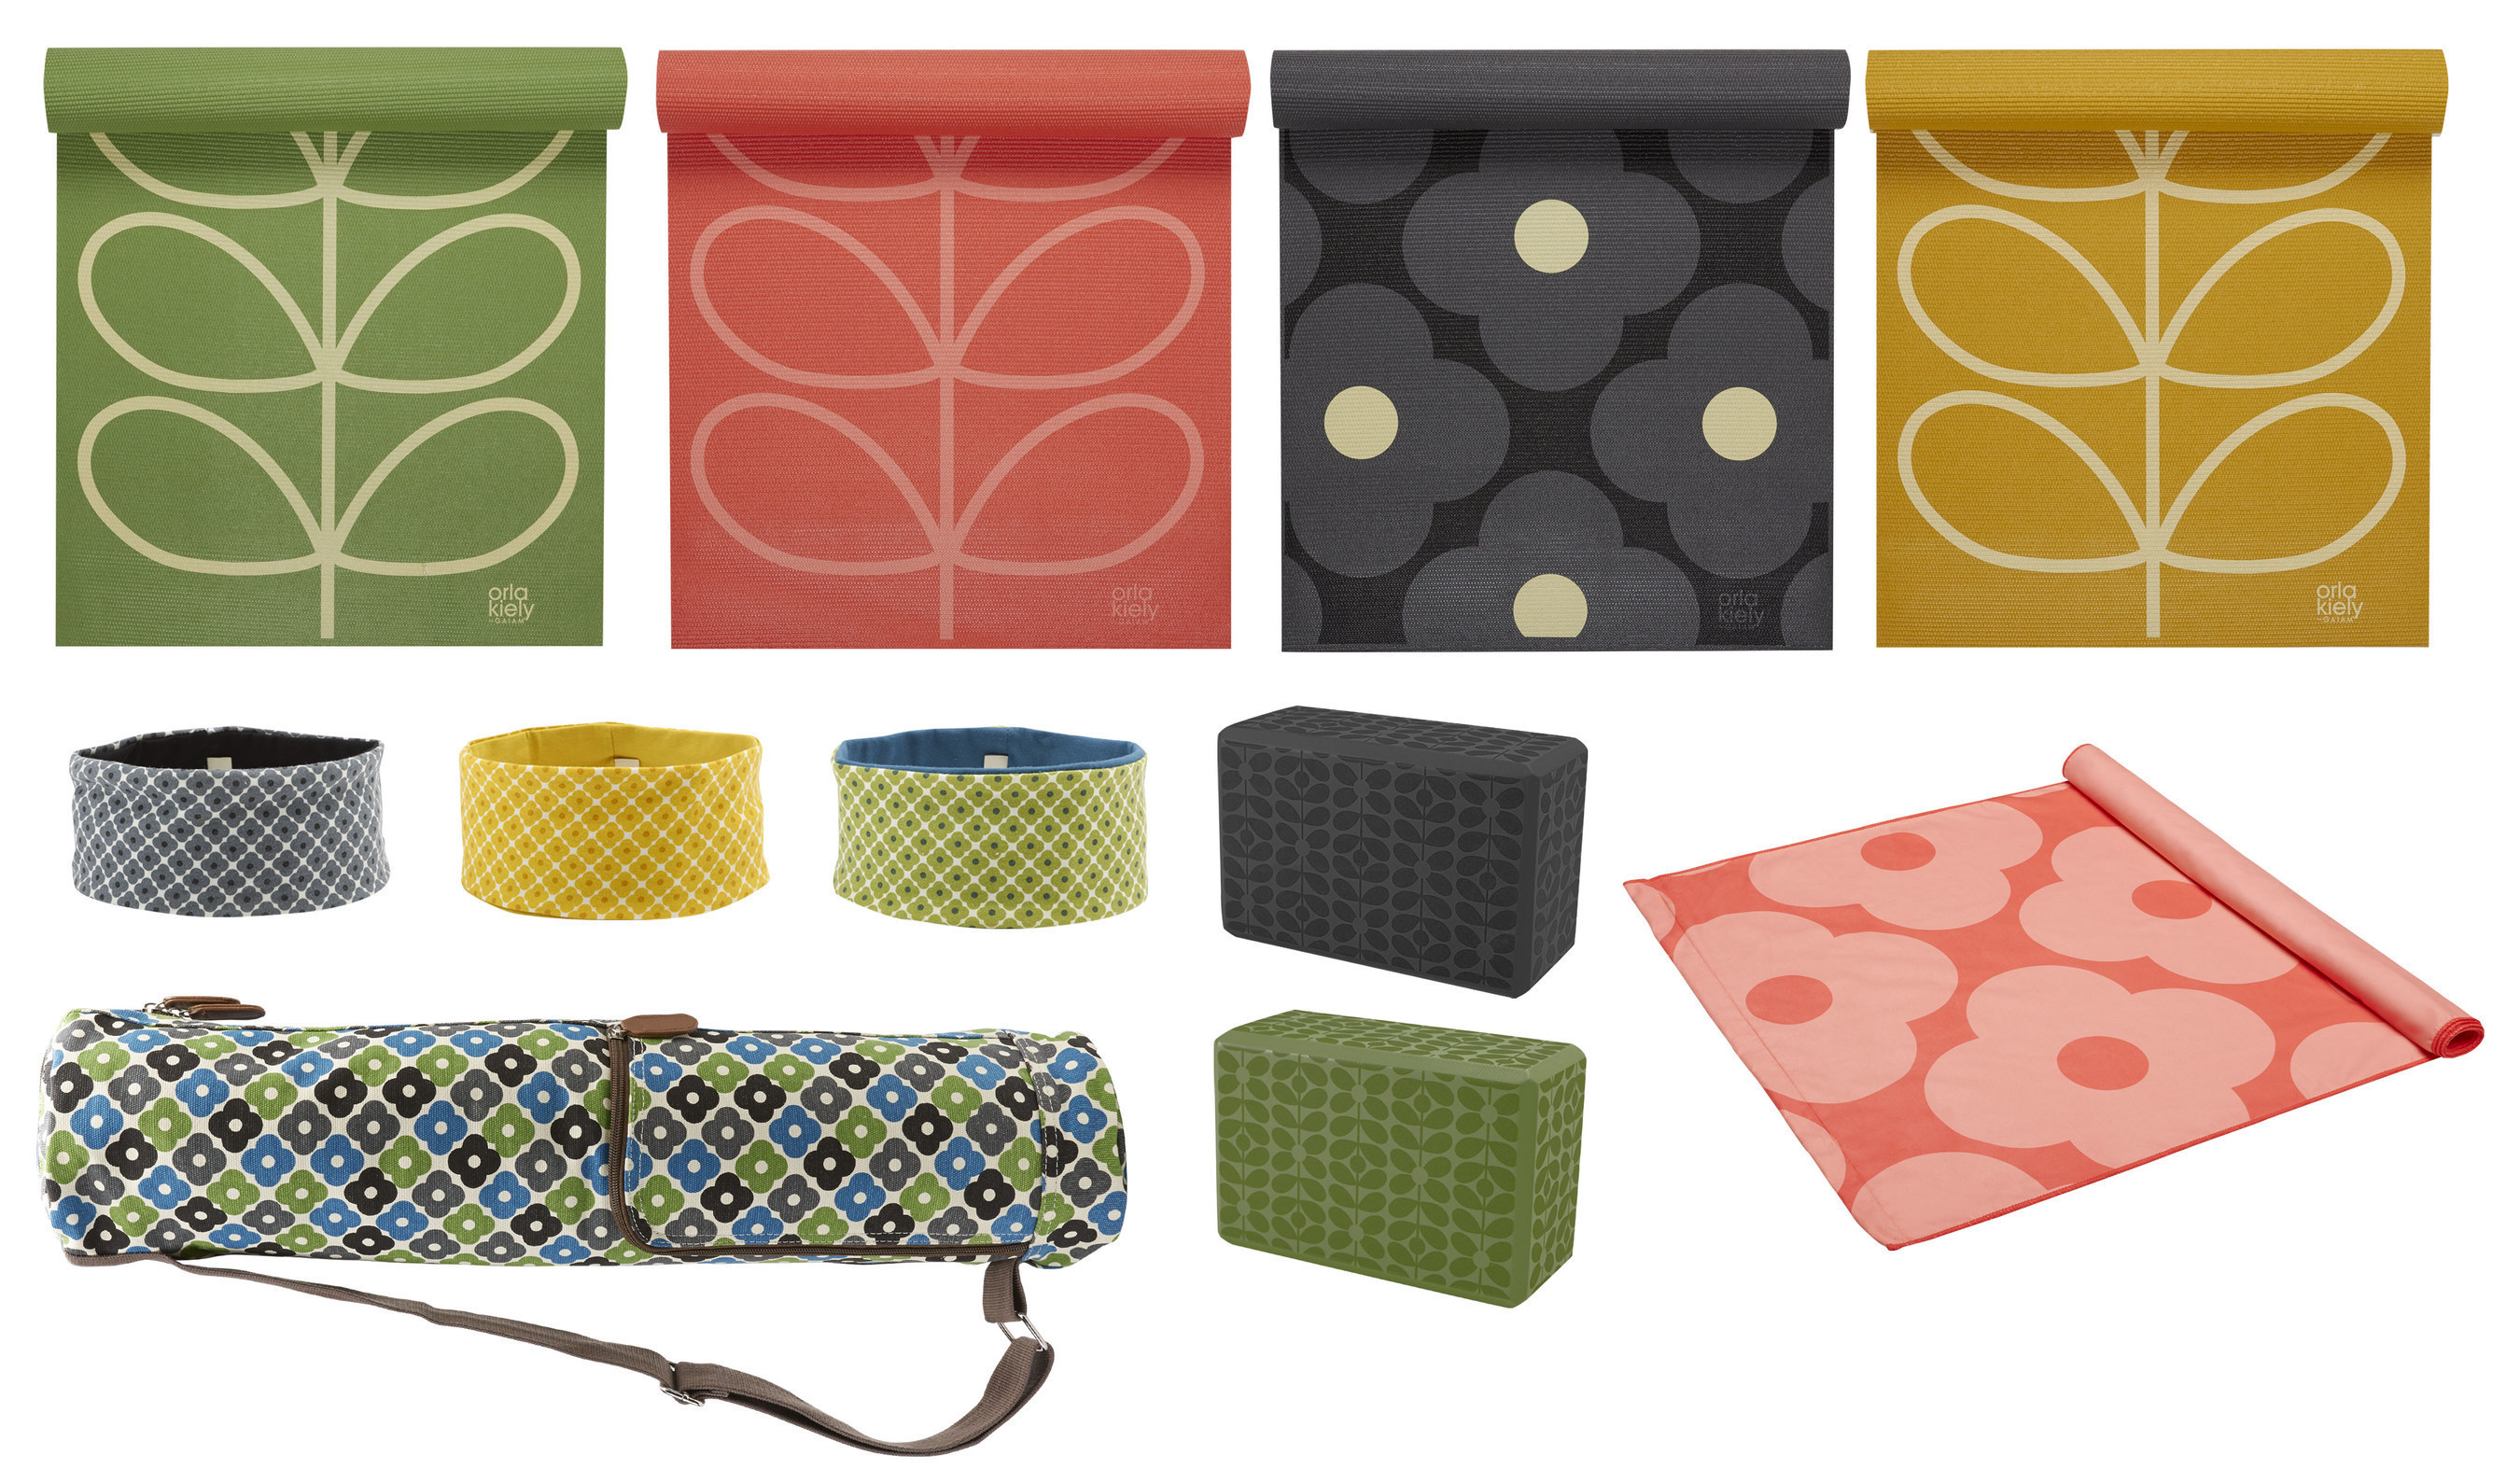 0ef0f09bcf87 Gaiam Partners With Orla Kiely To Launch Limited Edition Yoga Mats ...